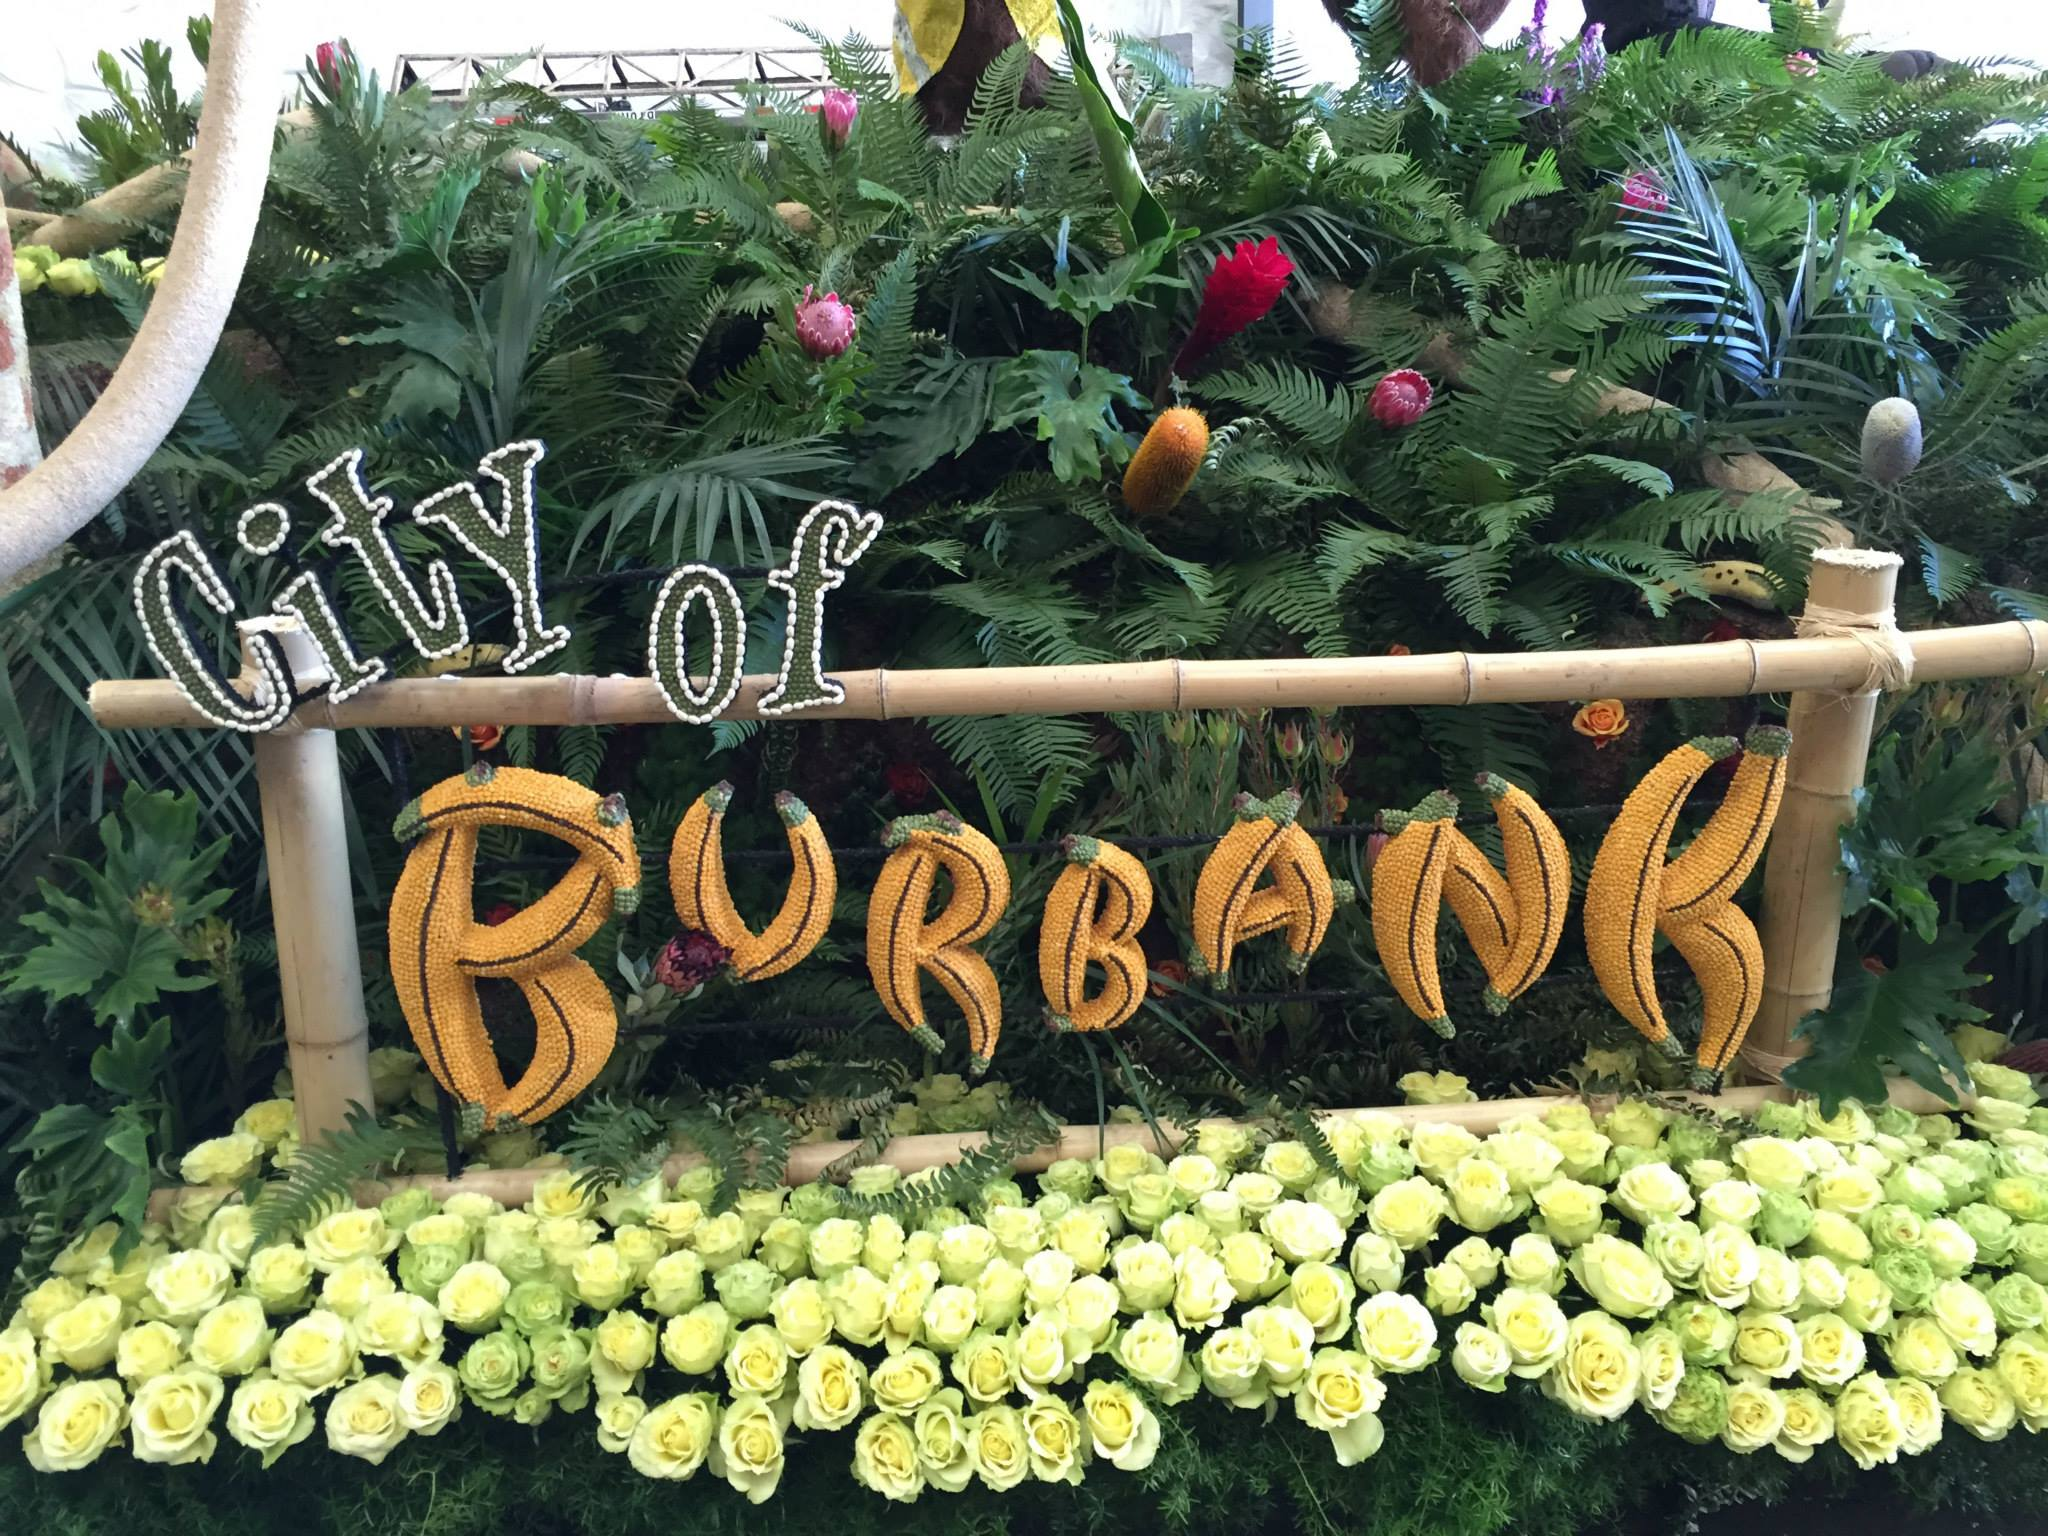 burbank-tournament-of-roses-float-with-flyboy-naturals-rose-petals.1.1.2015.1.jpg